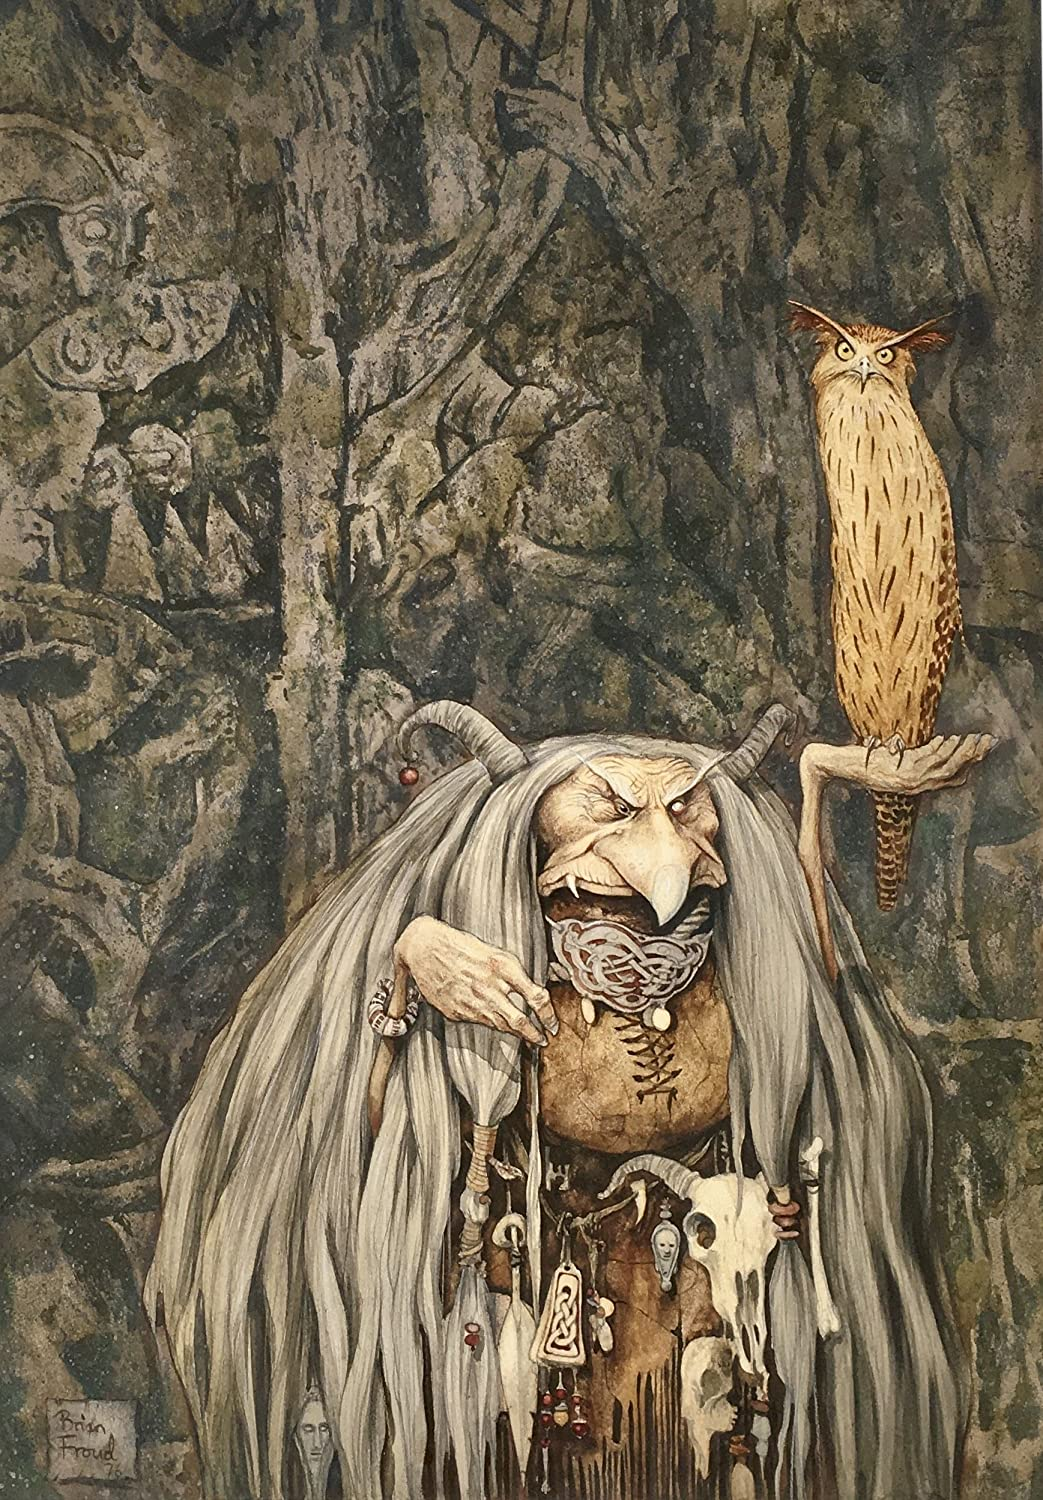 BRIAN FROUD Limited Edition Print 'WENGWA OF THE CRYSTAL EYE' SIGNED